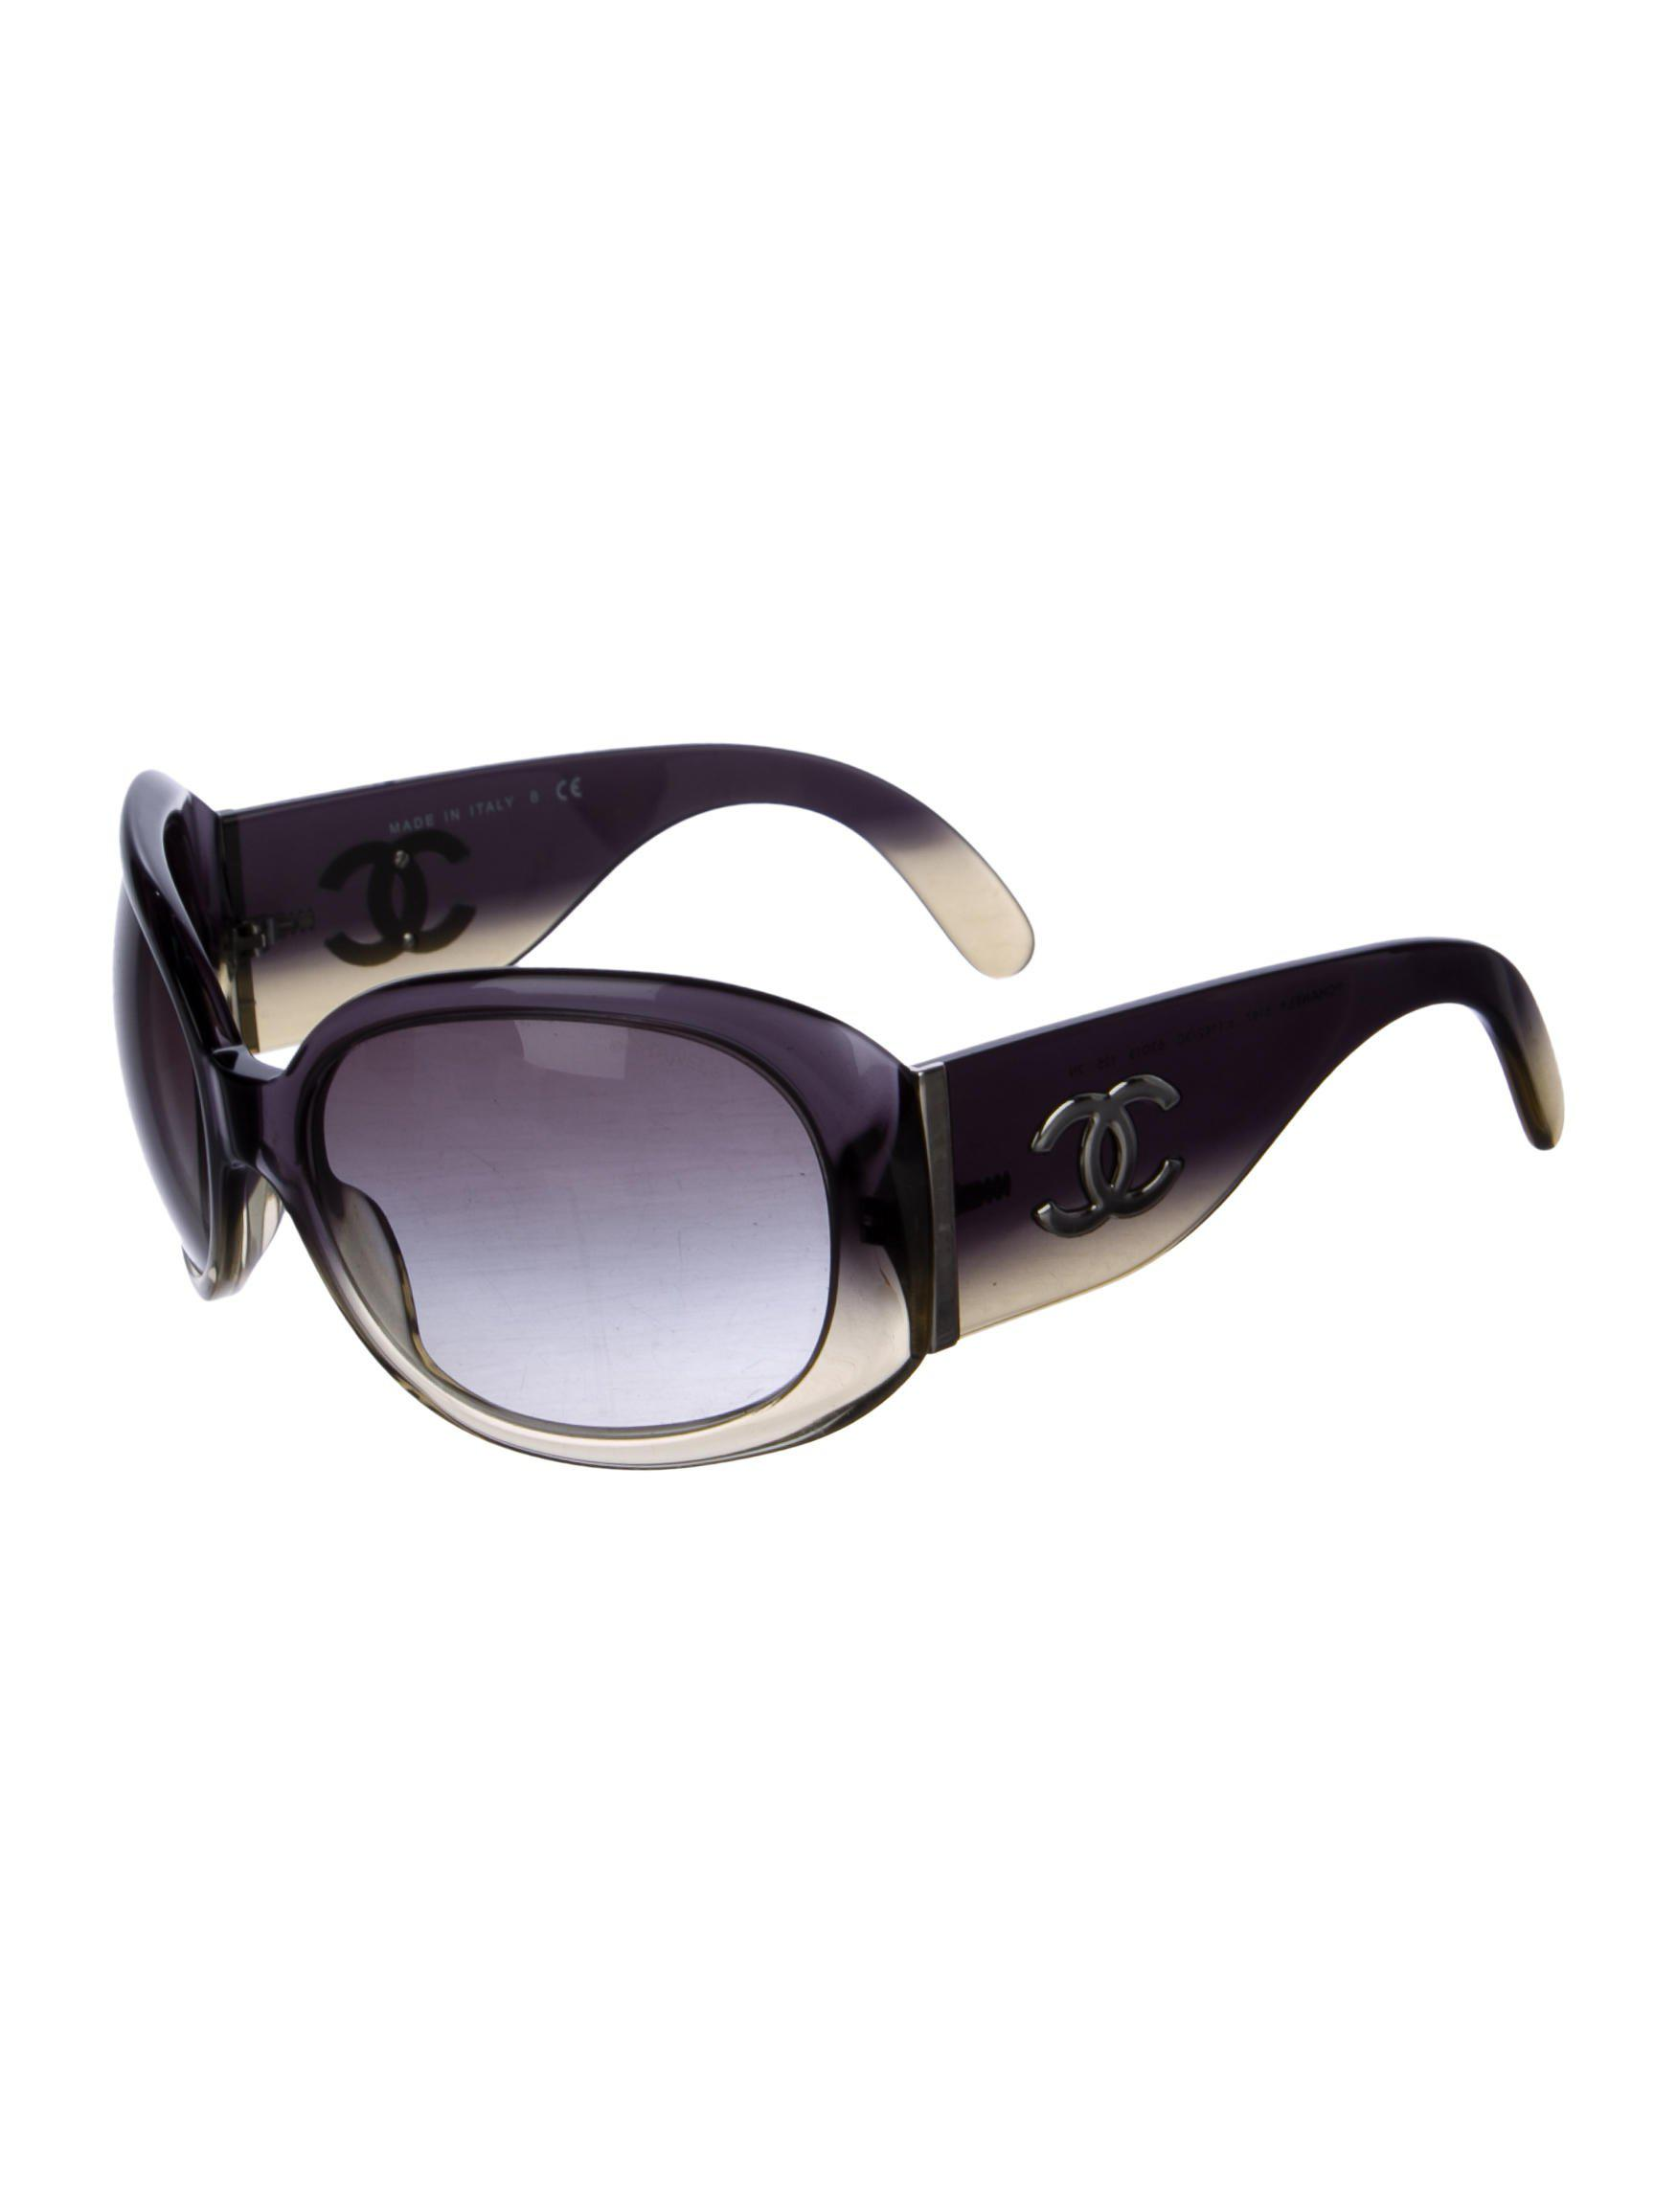 07cad692737 Lyst - Chanel Ombré Cc Sunglasses Black in Metallic